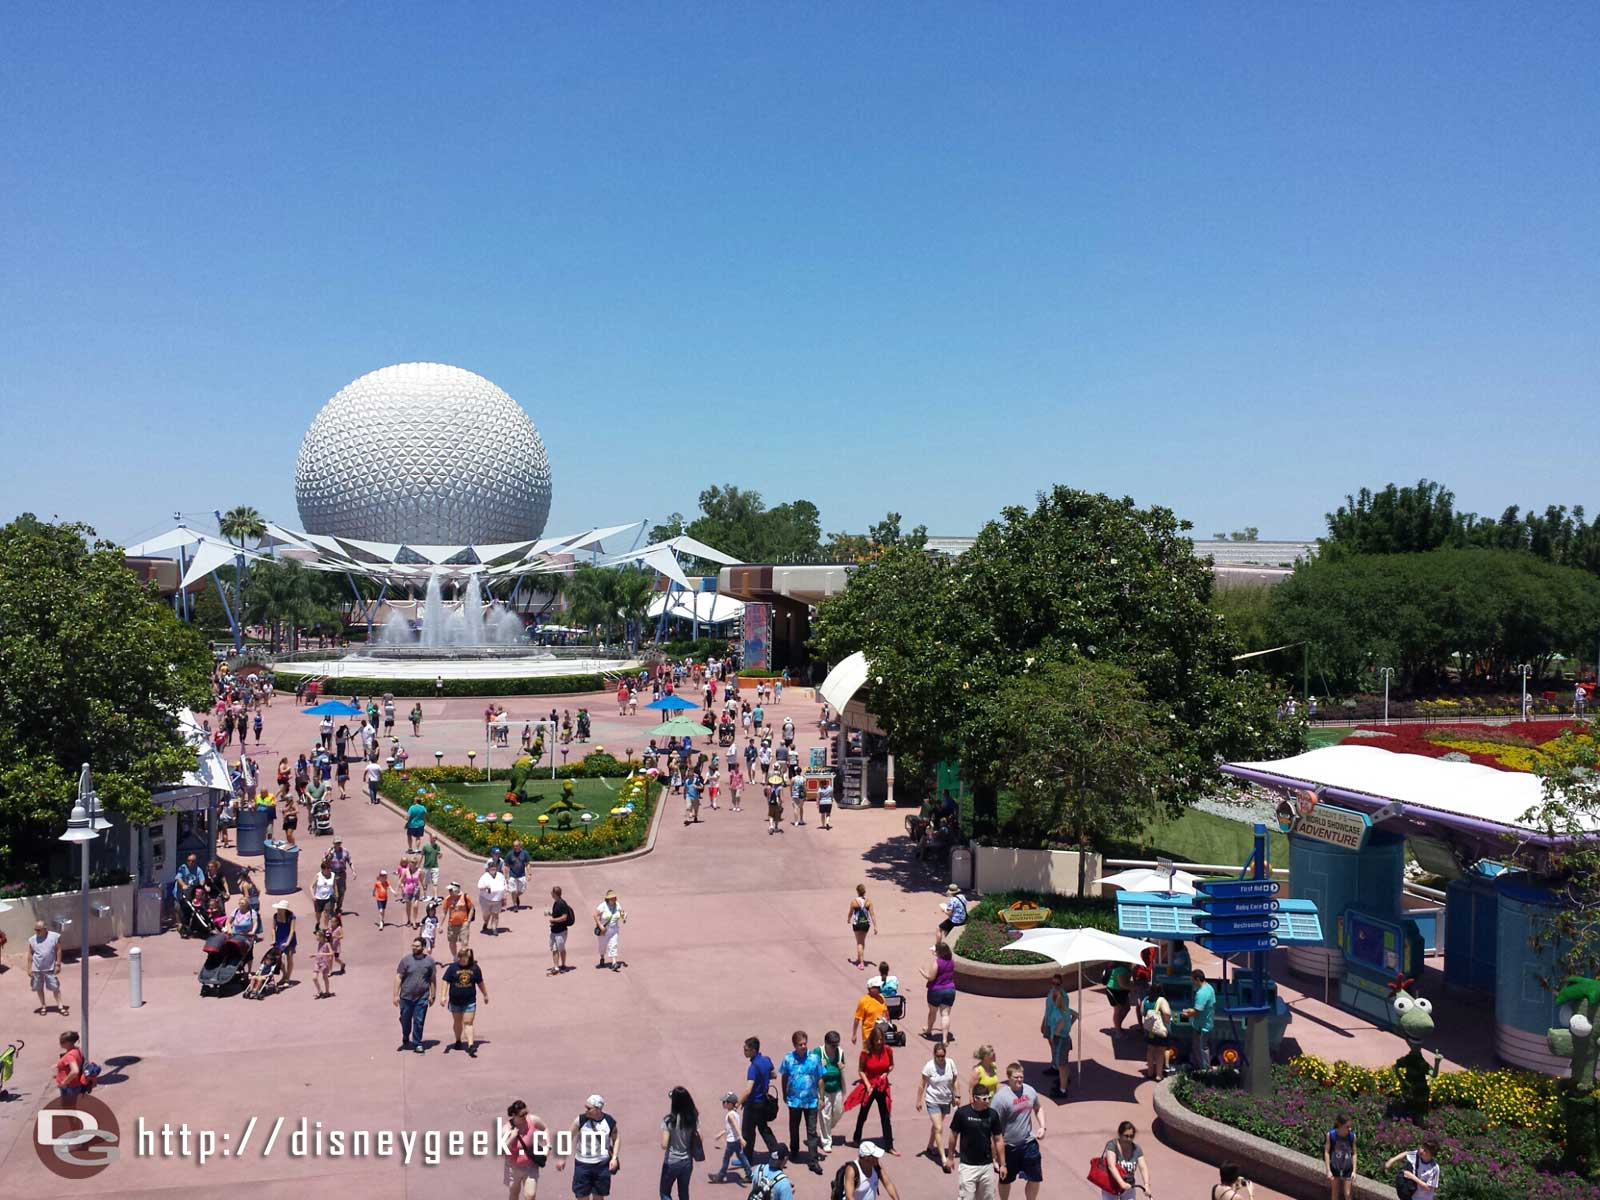 Future World from the Monorail #Epcot